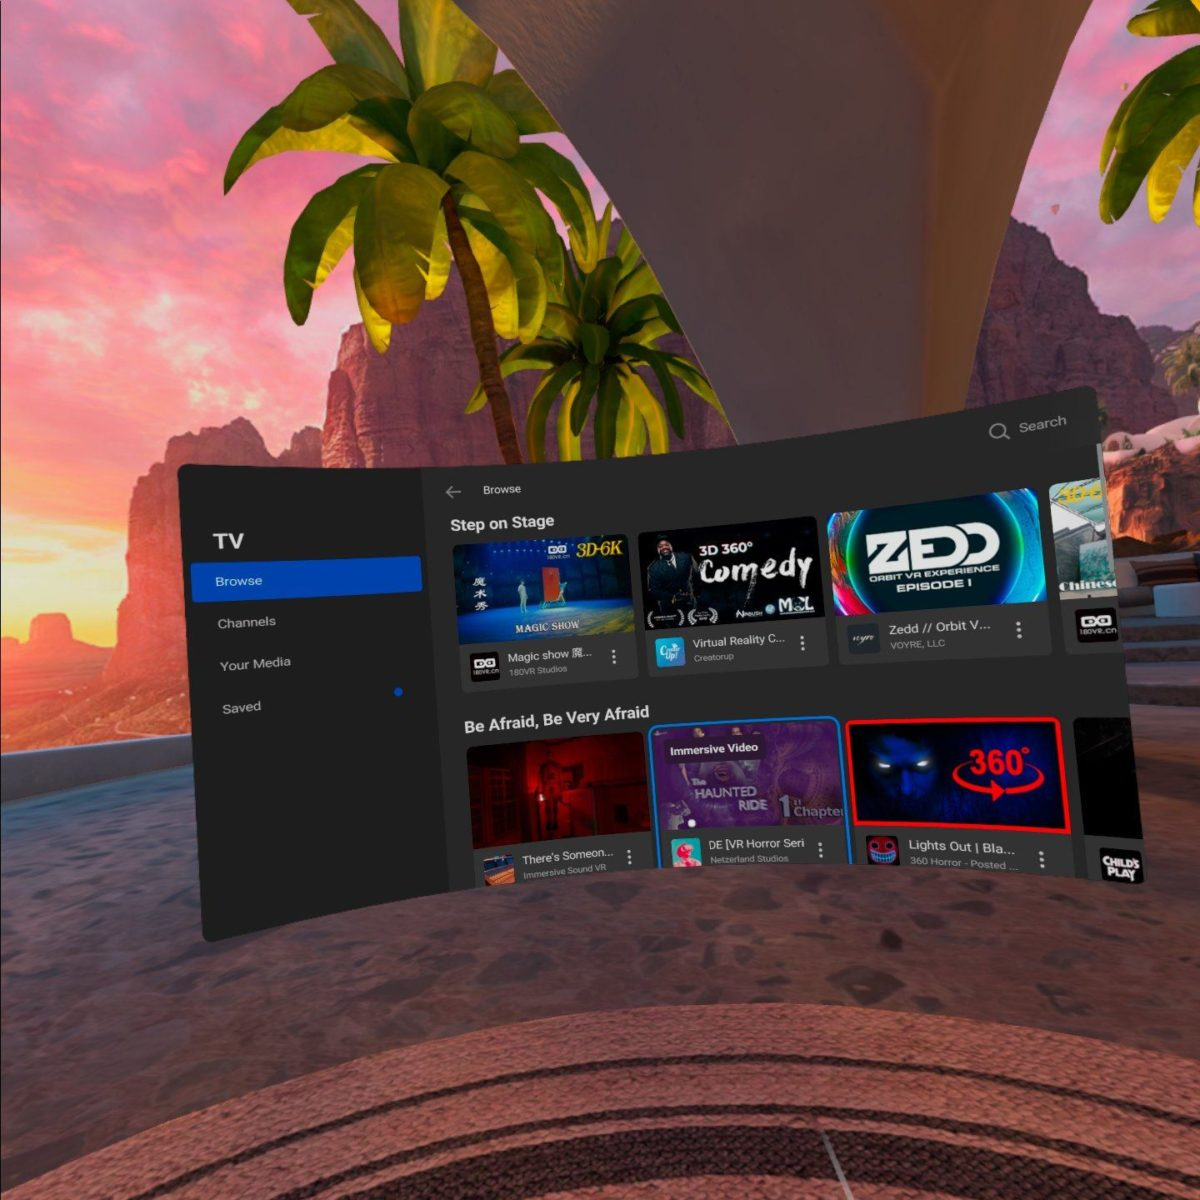 Quill Theater curated content in VR